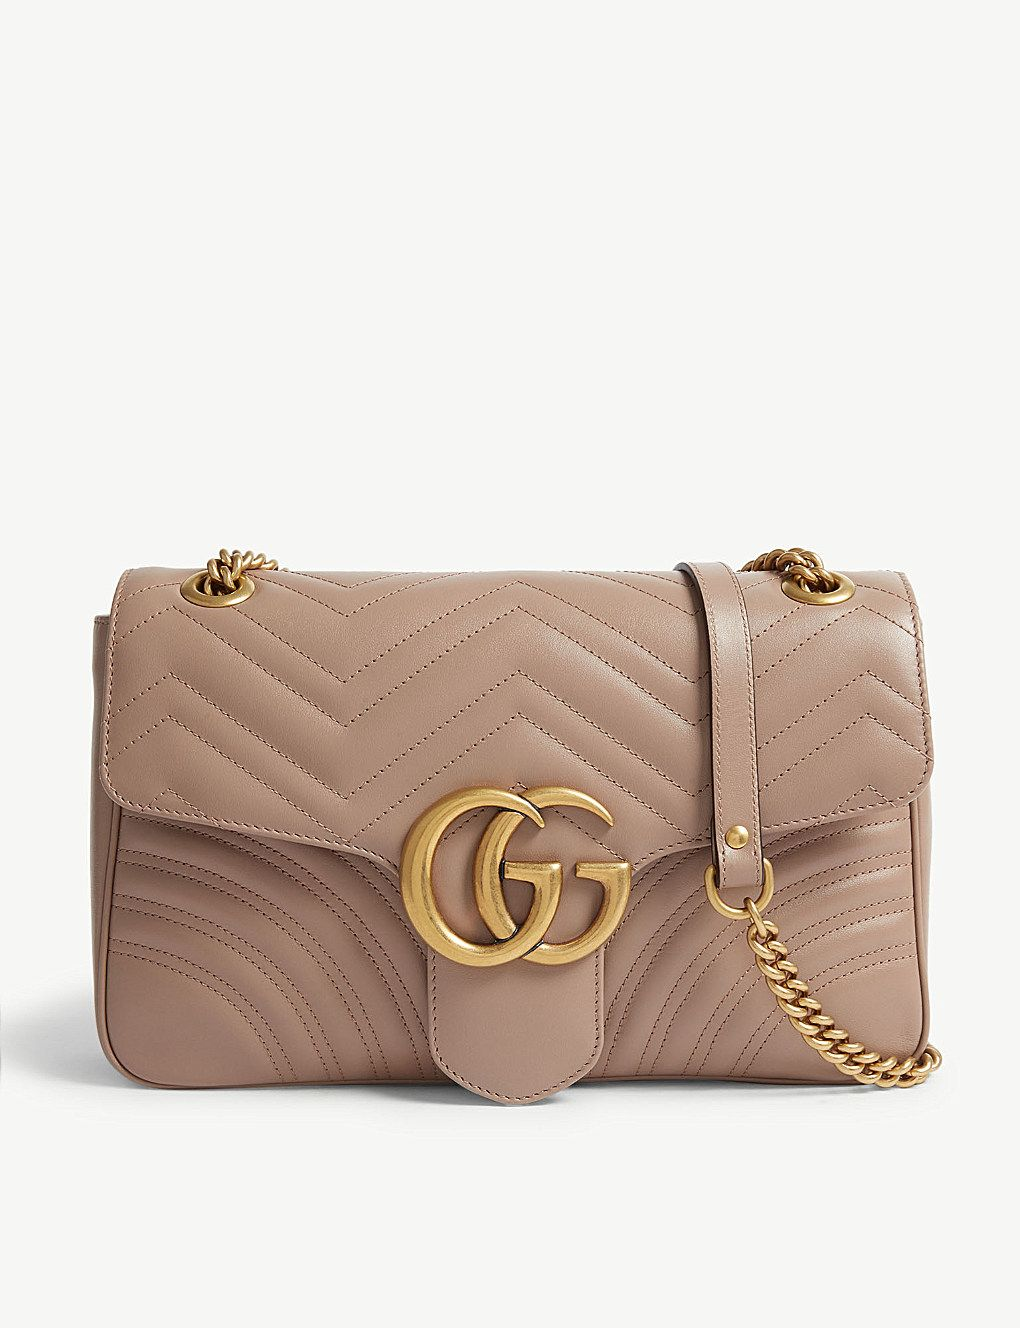 524f712332b GUCCI GG Marmont leather shoulder bag in 2019